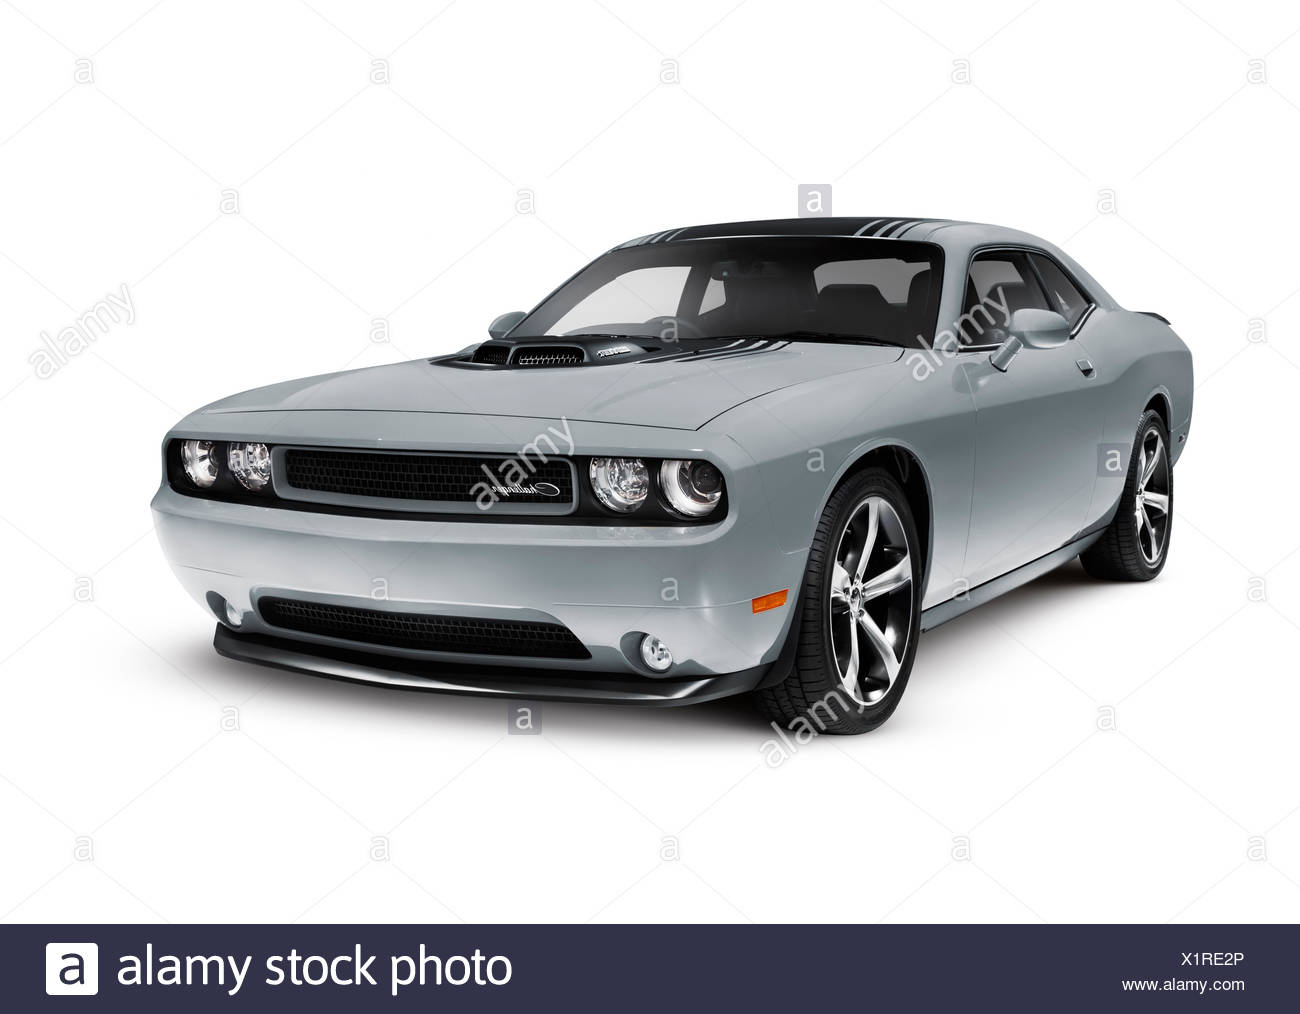 Gray 2014 Dodge Challenger muscle car - Stock Image